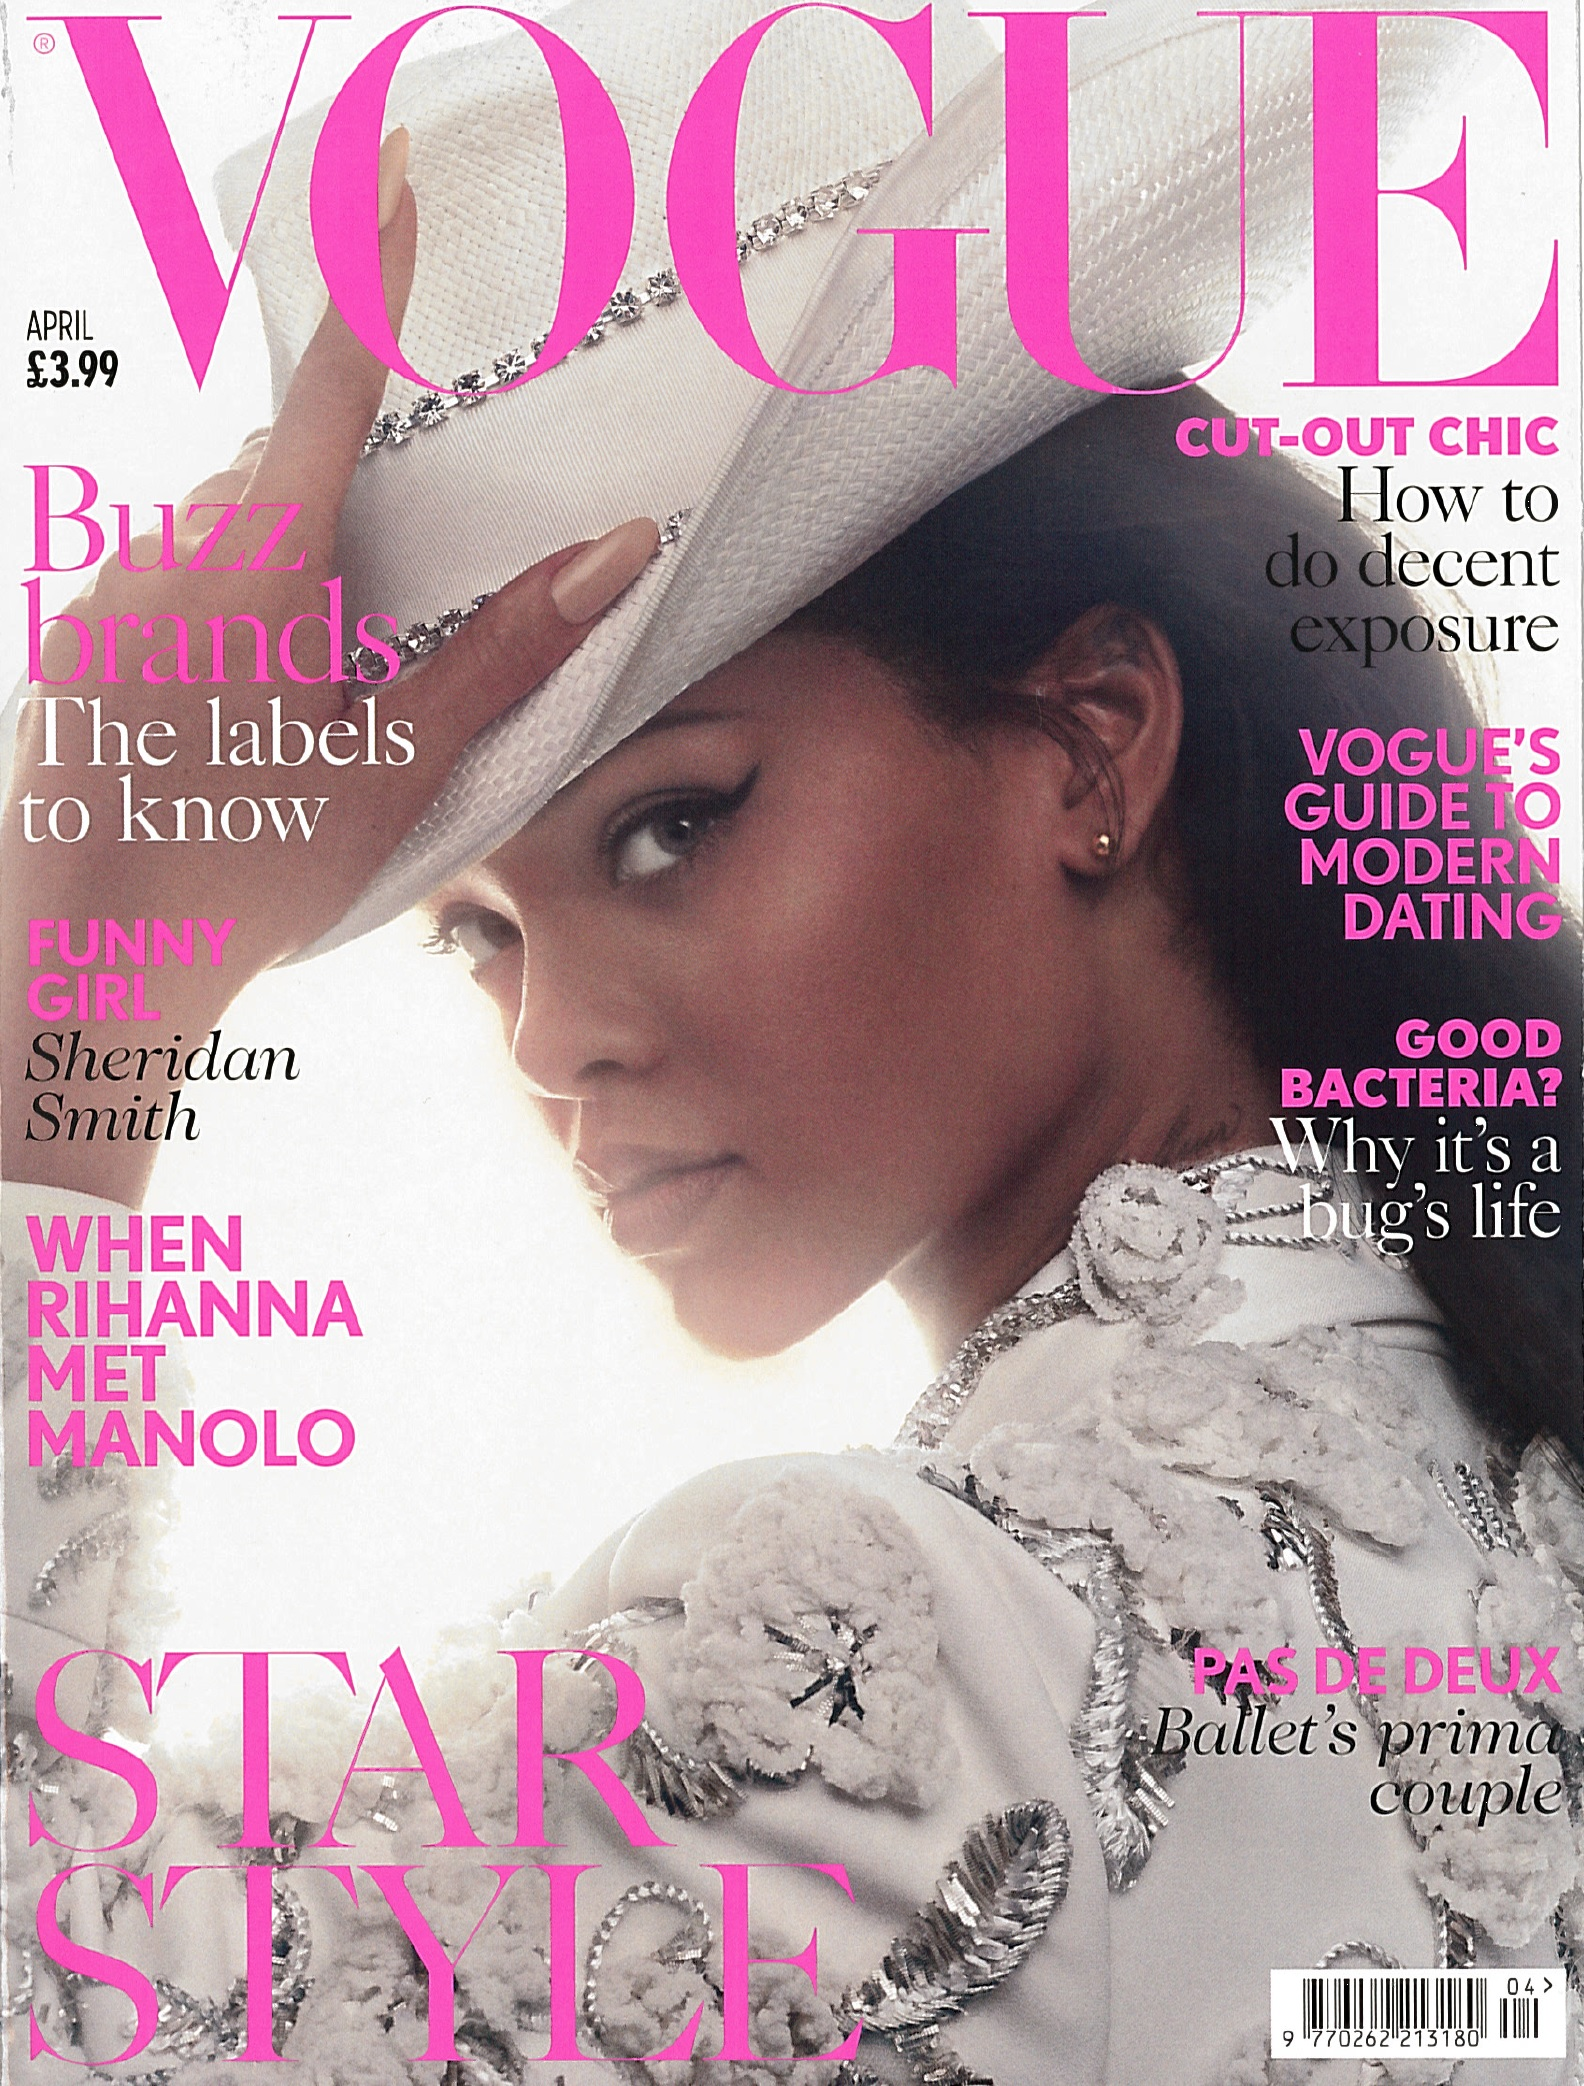 april-vogue-micro.png